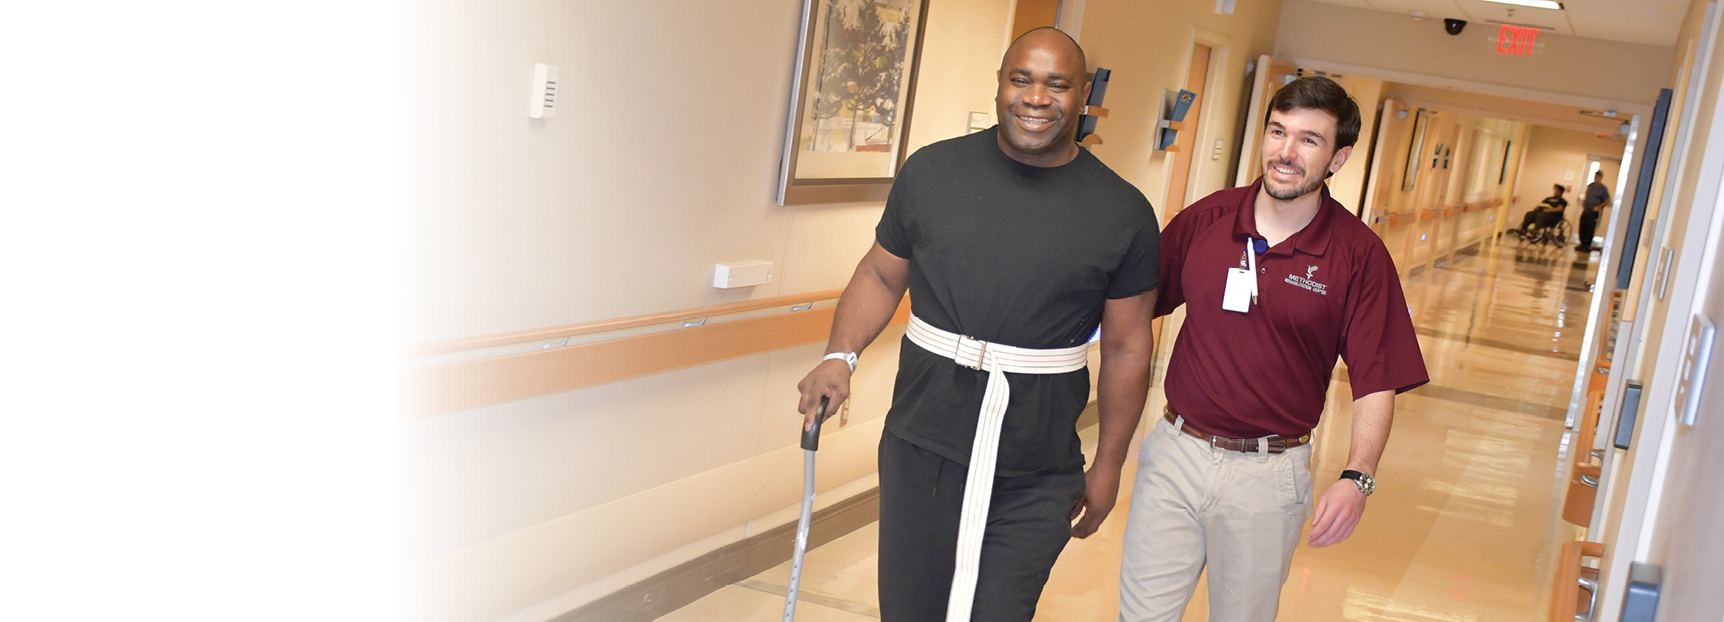 Former Ole Miss running back tackles quest to walk again with trademark determination